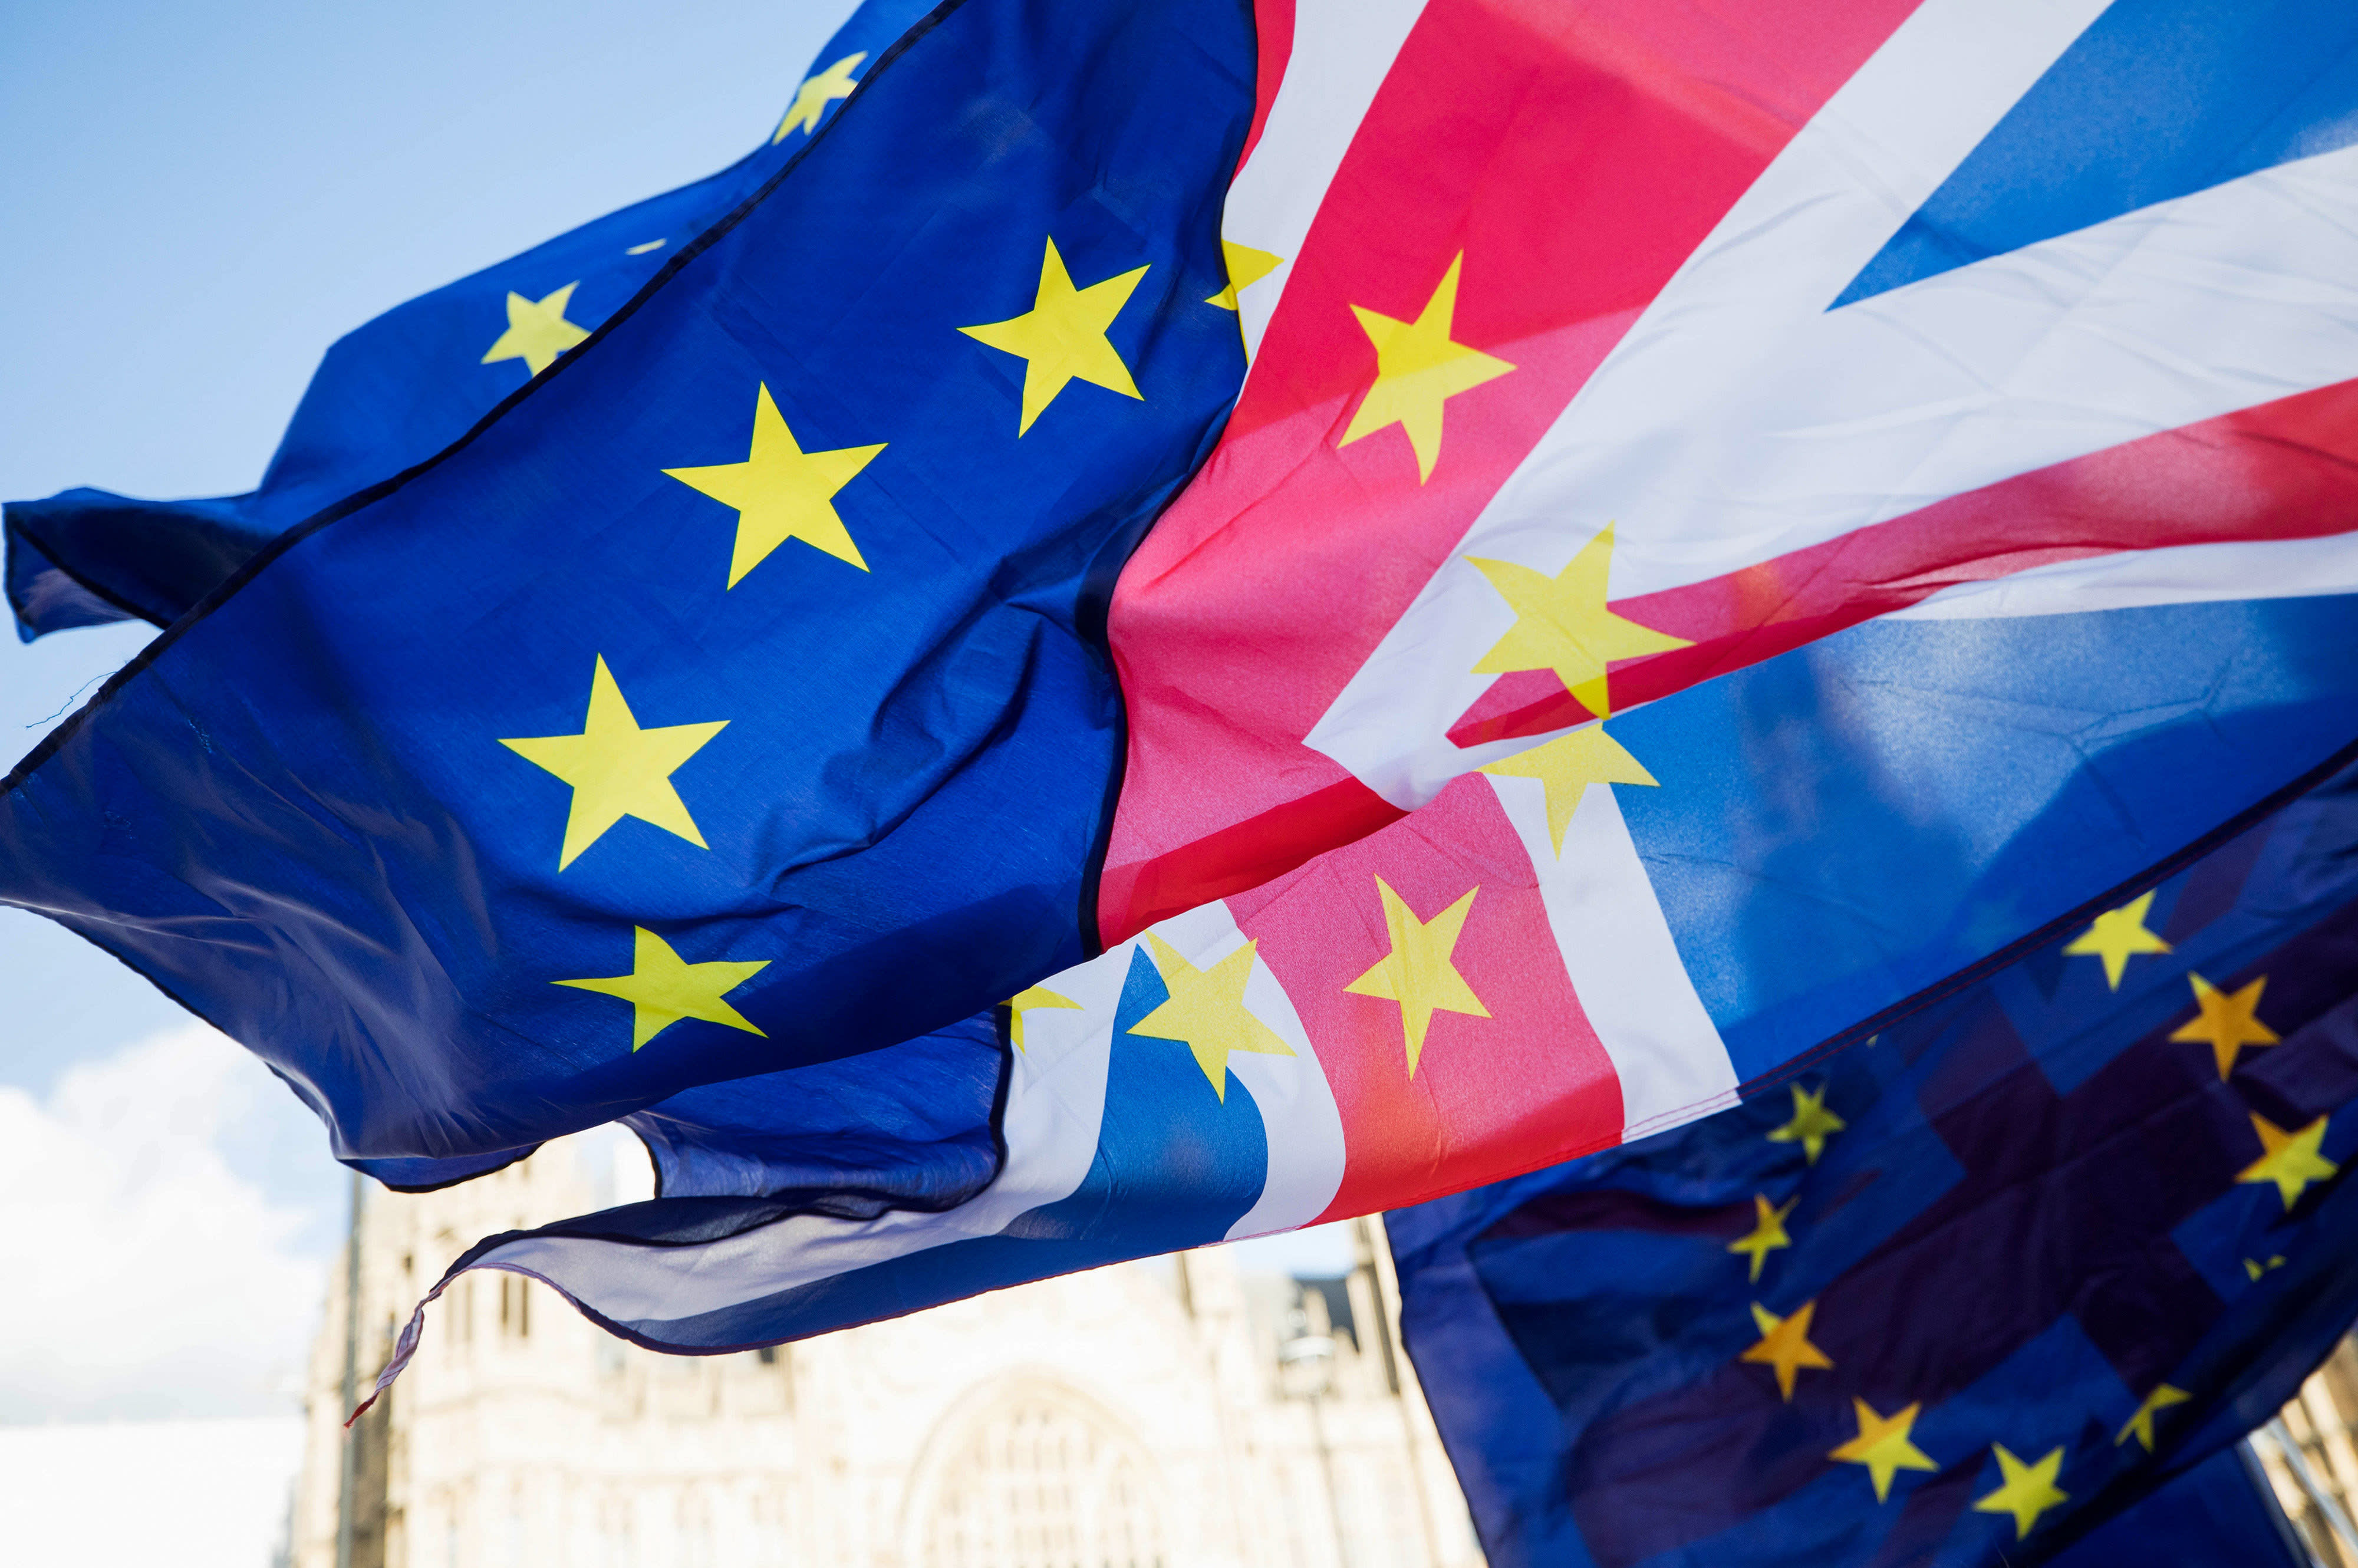 Govt told to increase state pension in no-deal Brexit